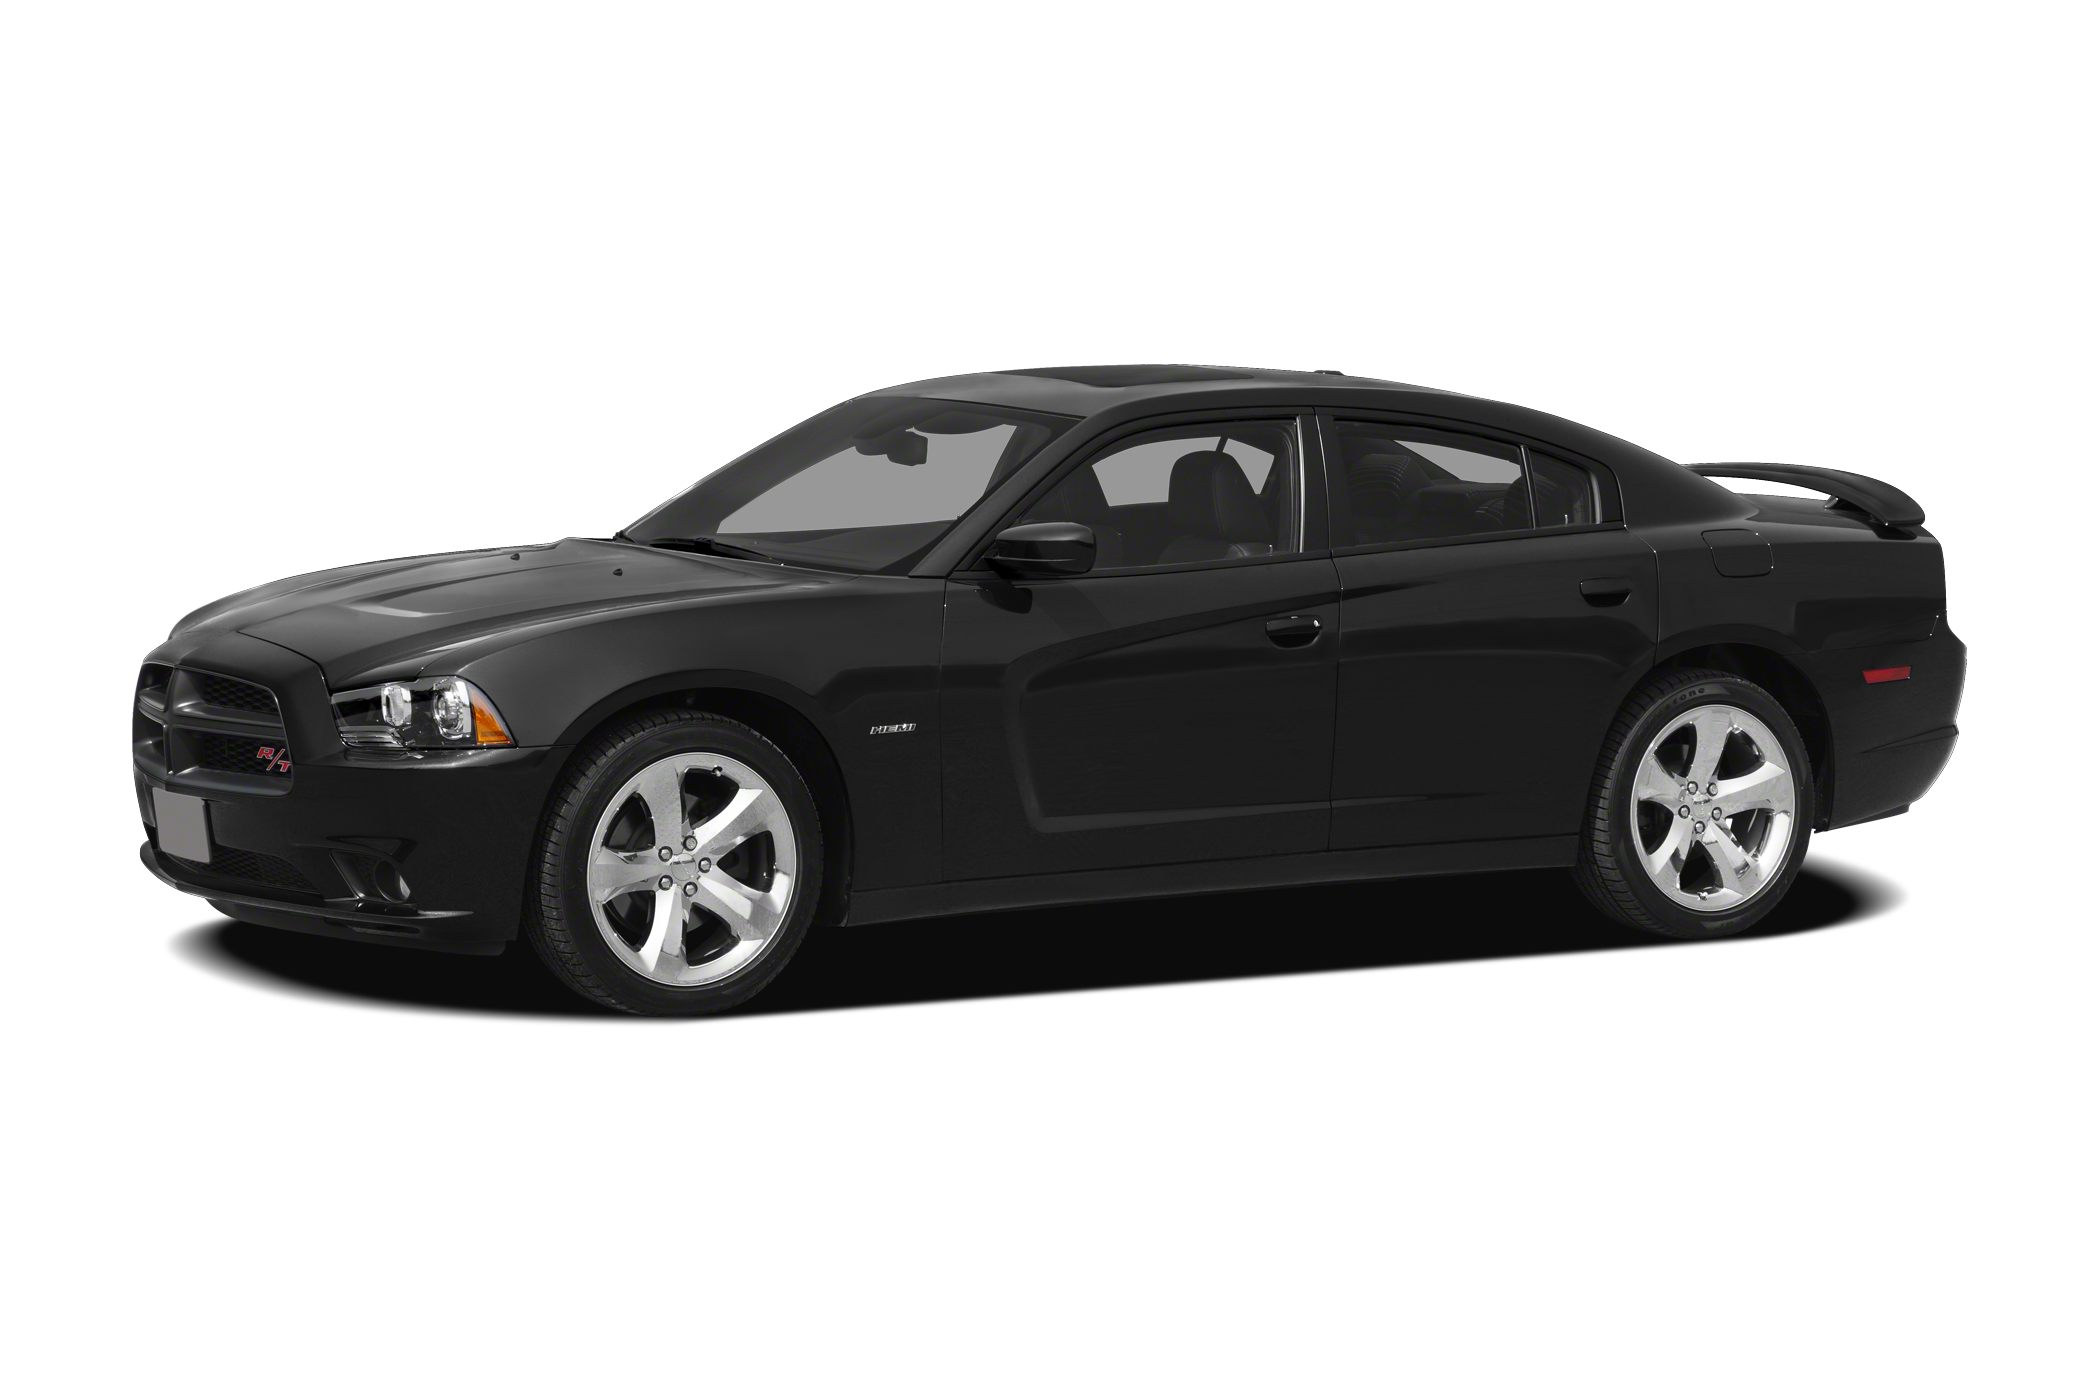 2012 Dodge Charger RT LOW MILES This 2012 Dodge Charger RT Max will sell fast -Bluetooth -Push